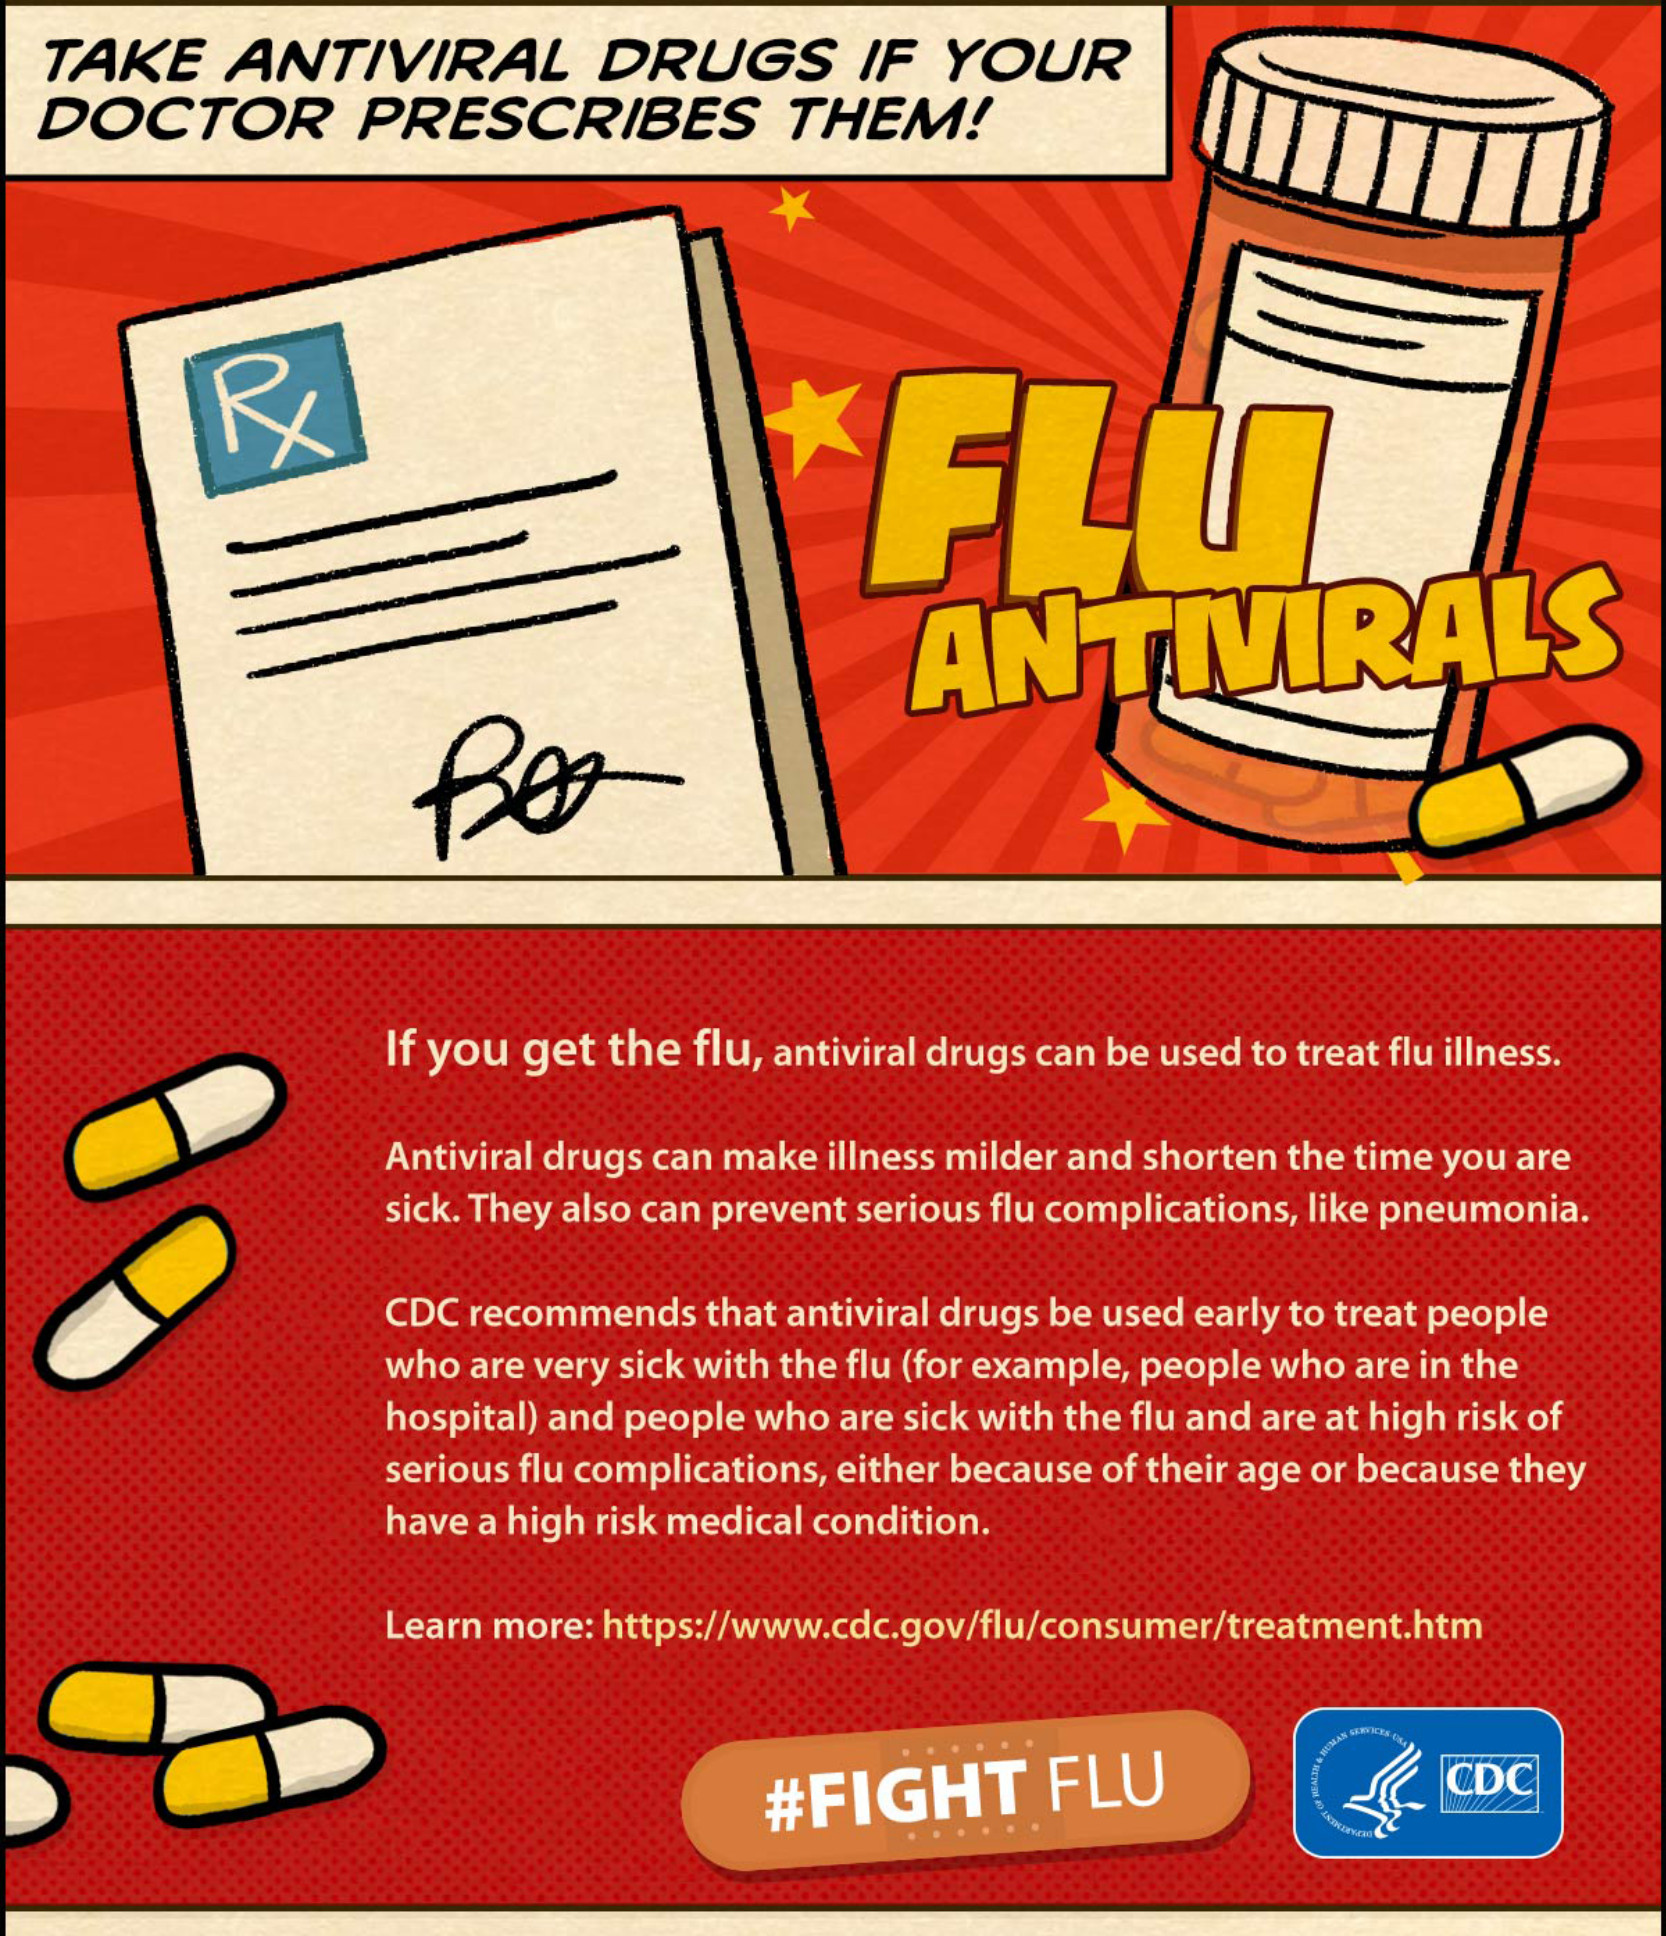 flu-antiviral-meds